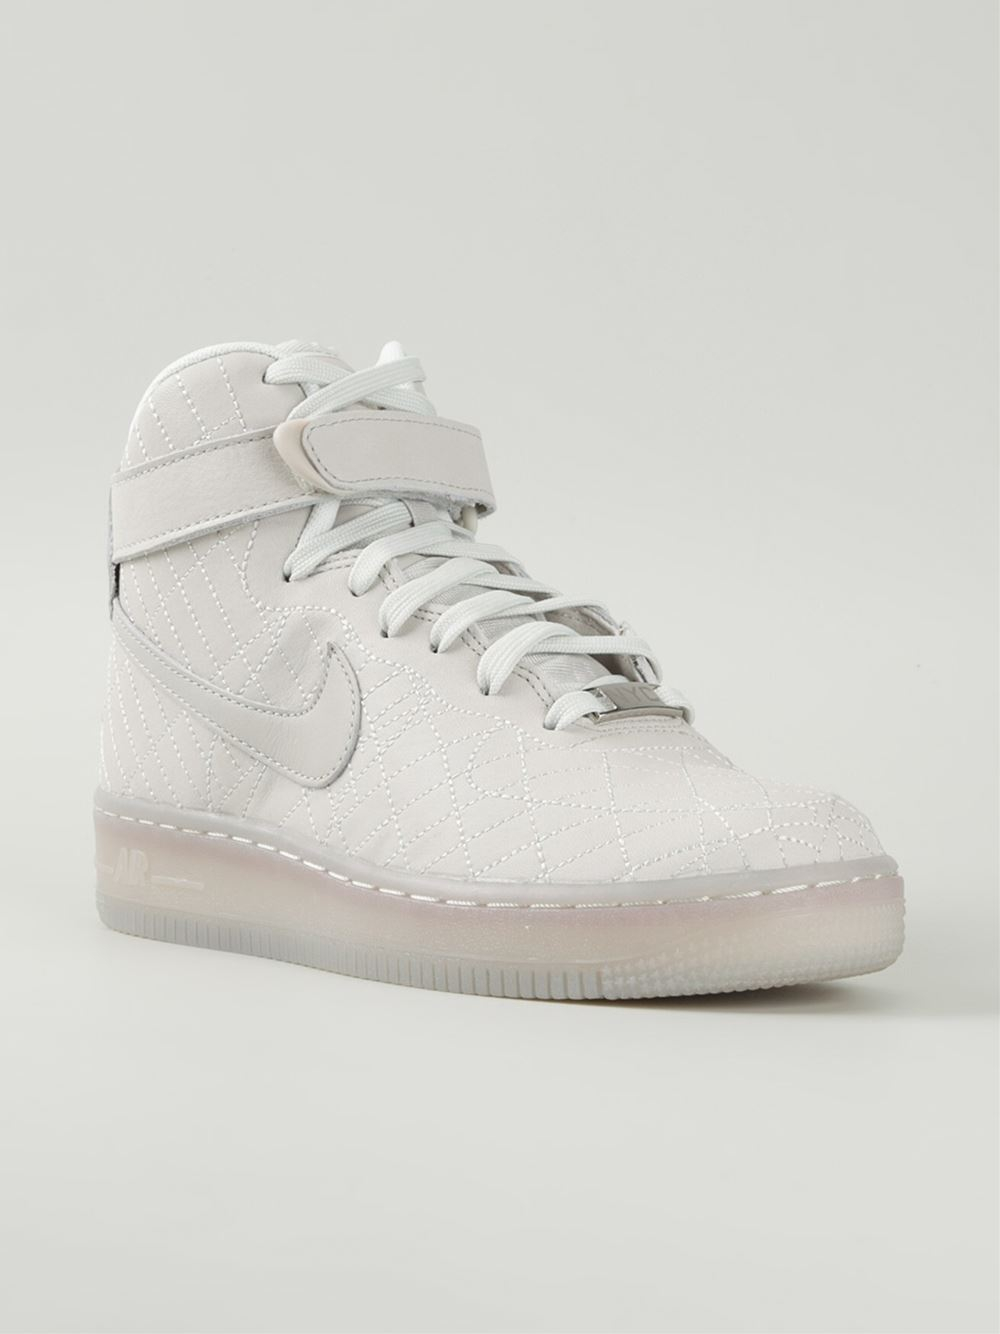 Nike Air Force 1 New York Sneakers In White For Men - Lyst-6040